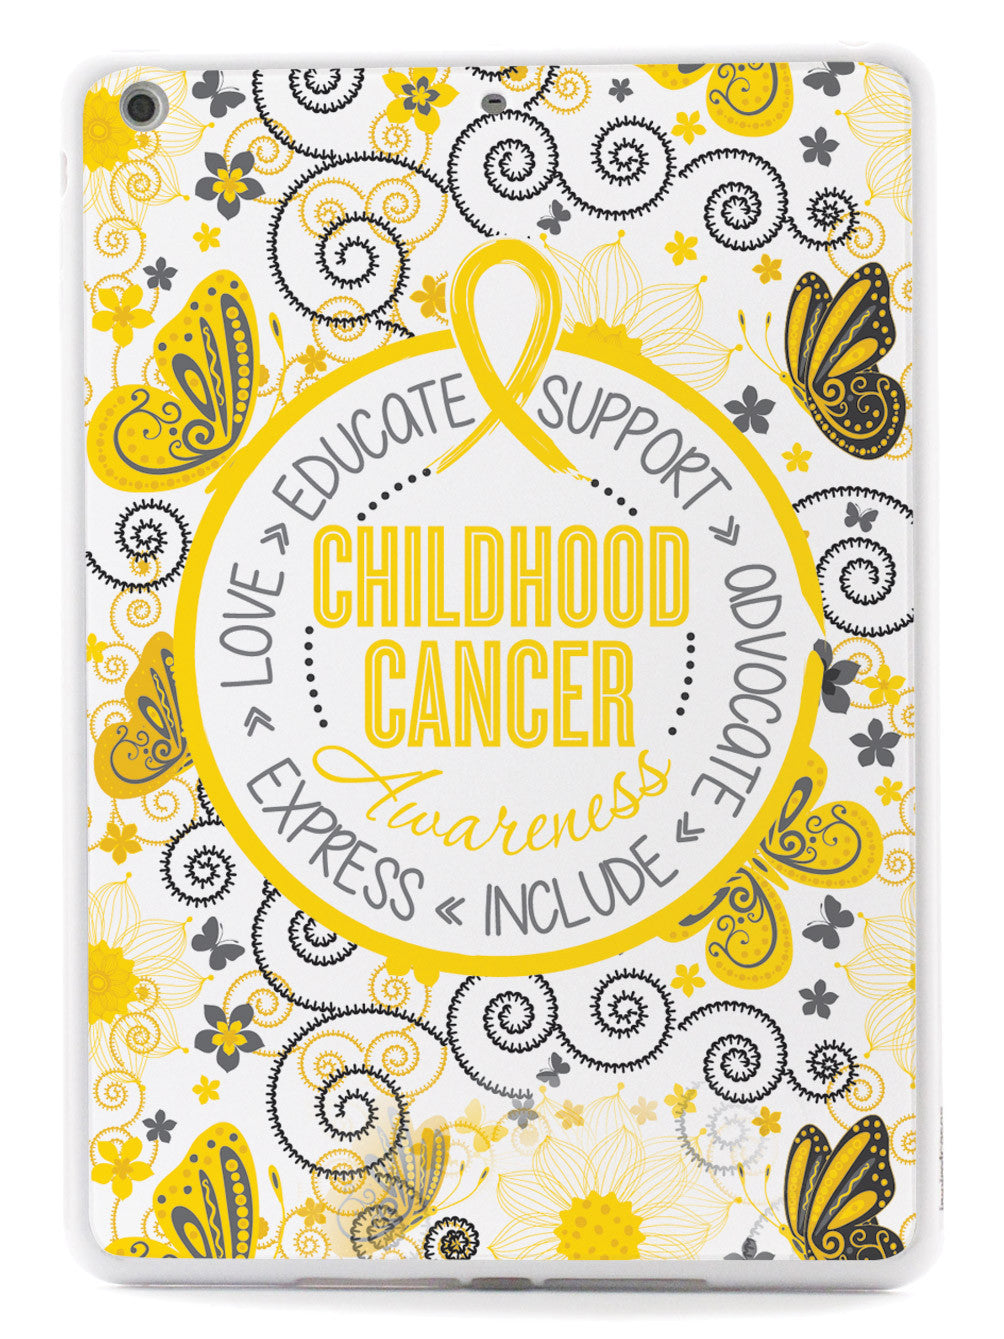 Childhood Cancer Awareness - Butterfly Pattern Case